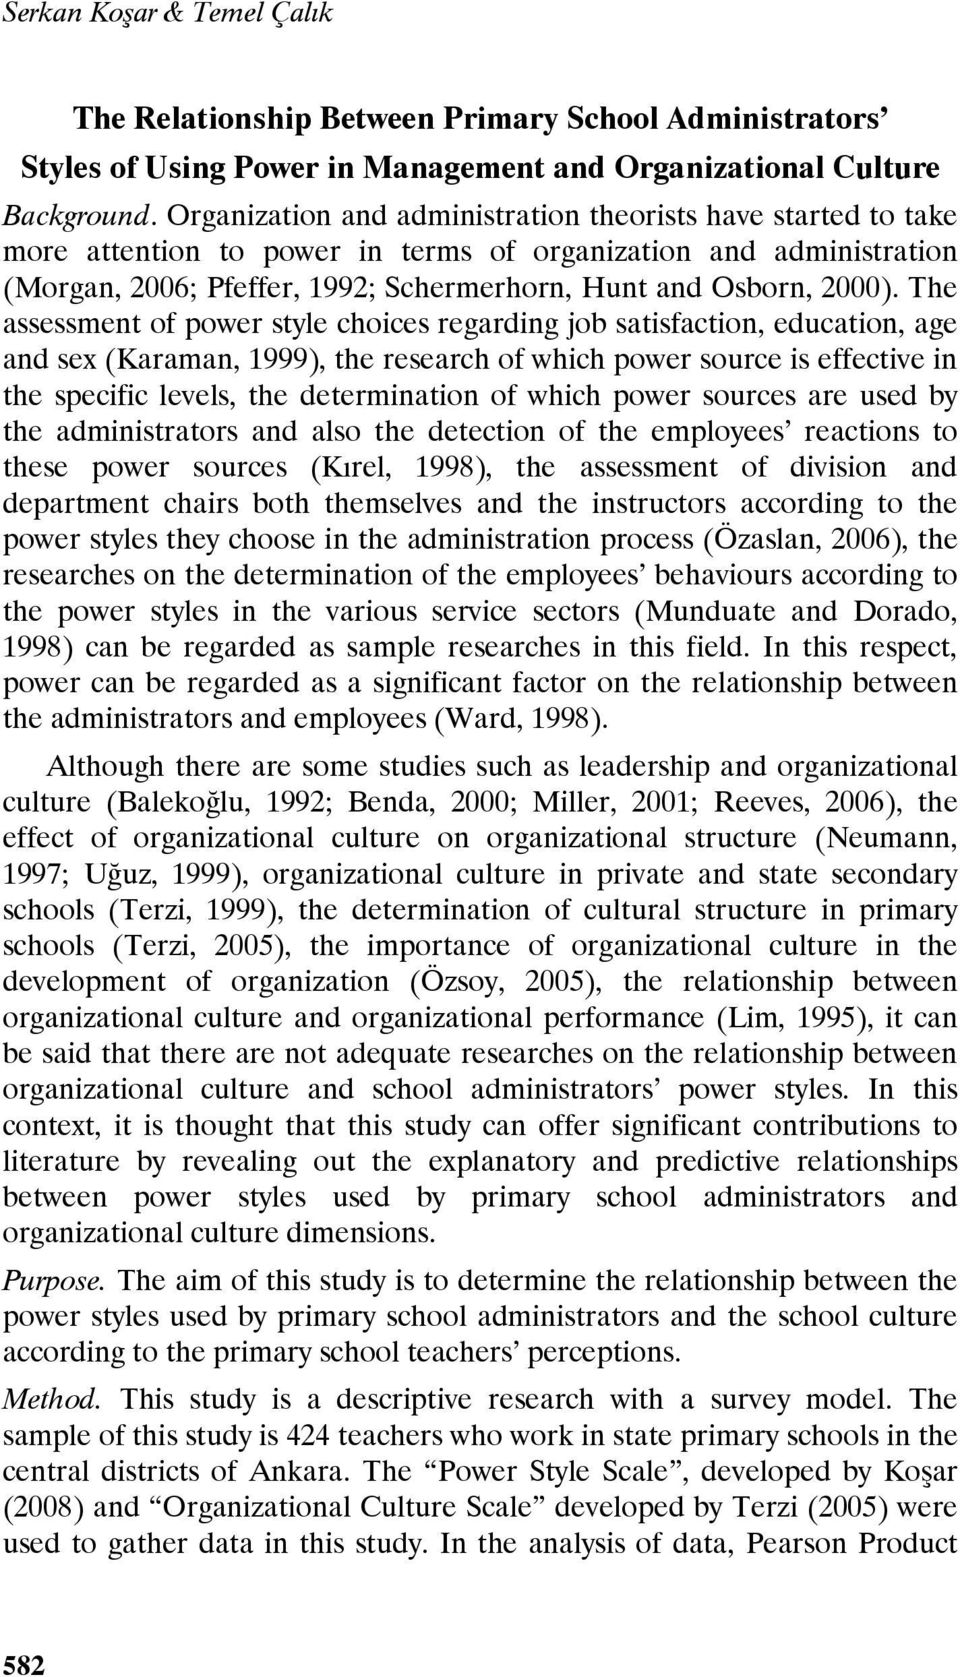 The assessment of power style choices regarding job satisfaction, education, age and sex (Karaman, 1999), the research of which power source is effective in the specific levels, the determination of